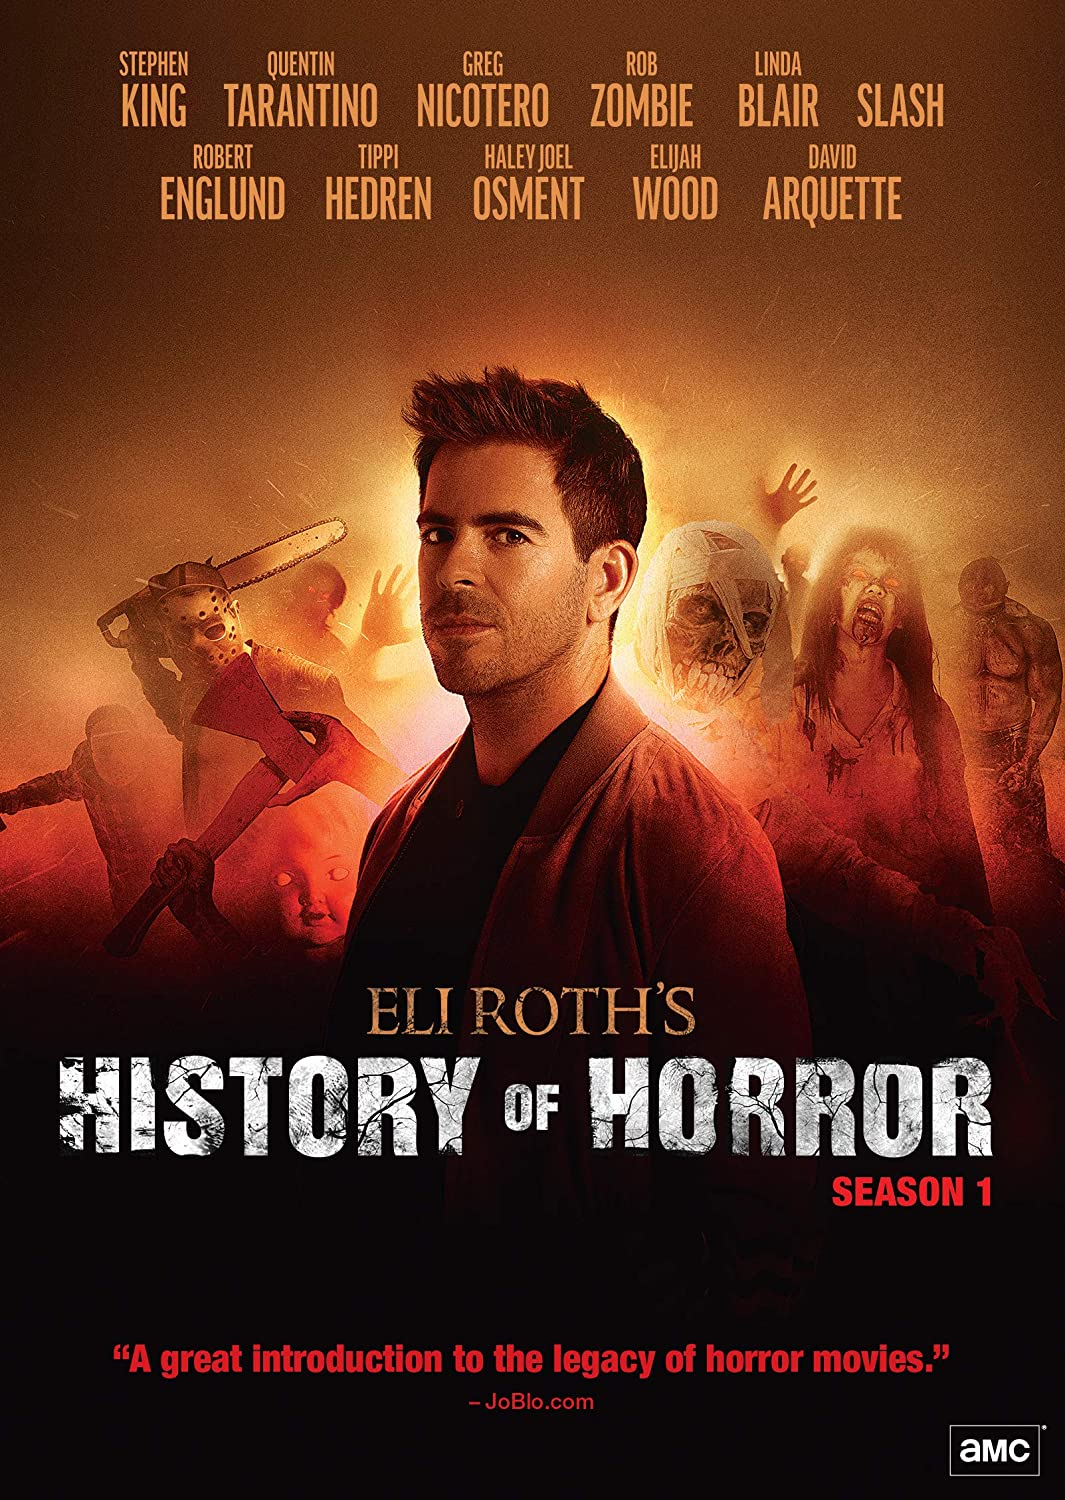 Eli Roth's SEAL limited product History of favorite 1 Season Horror